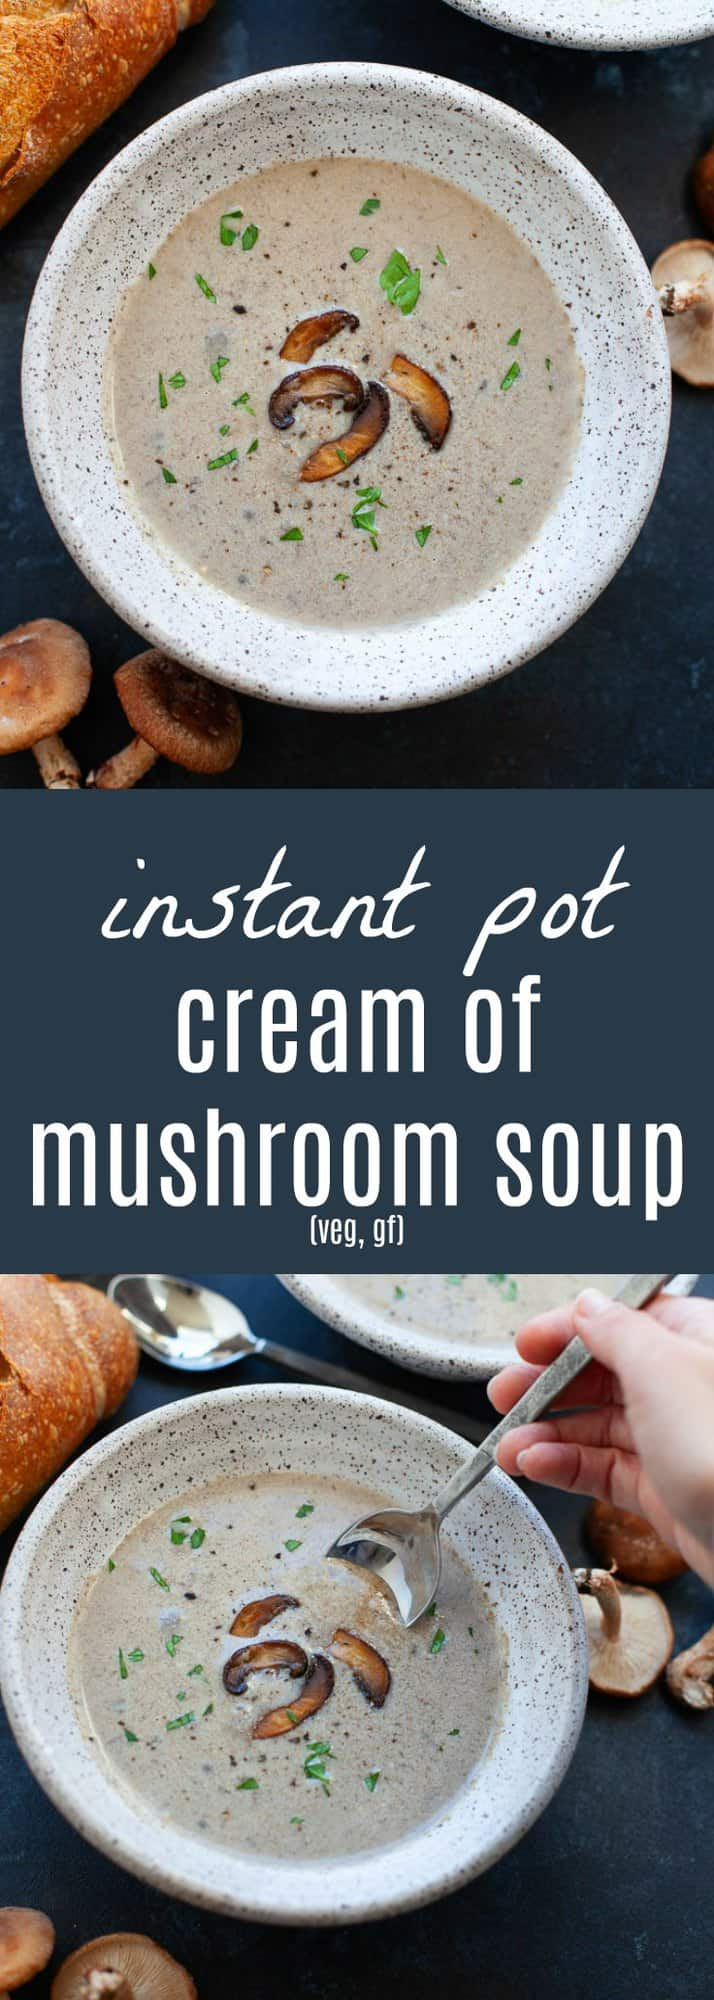 Perfect for the holidays or wintertime, this Instant Pot Cream of Mushroom Soup, is creamy, savory and full of umami! #InstantPot #soup #mushrooms